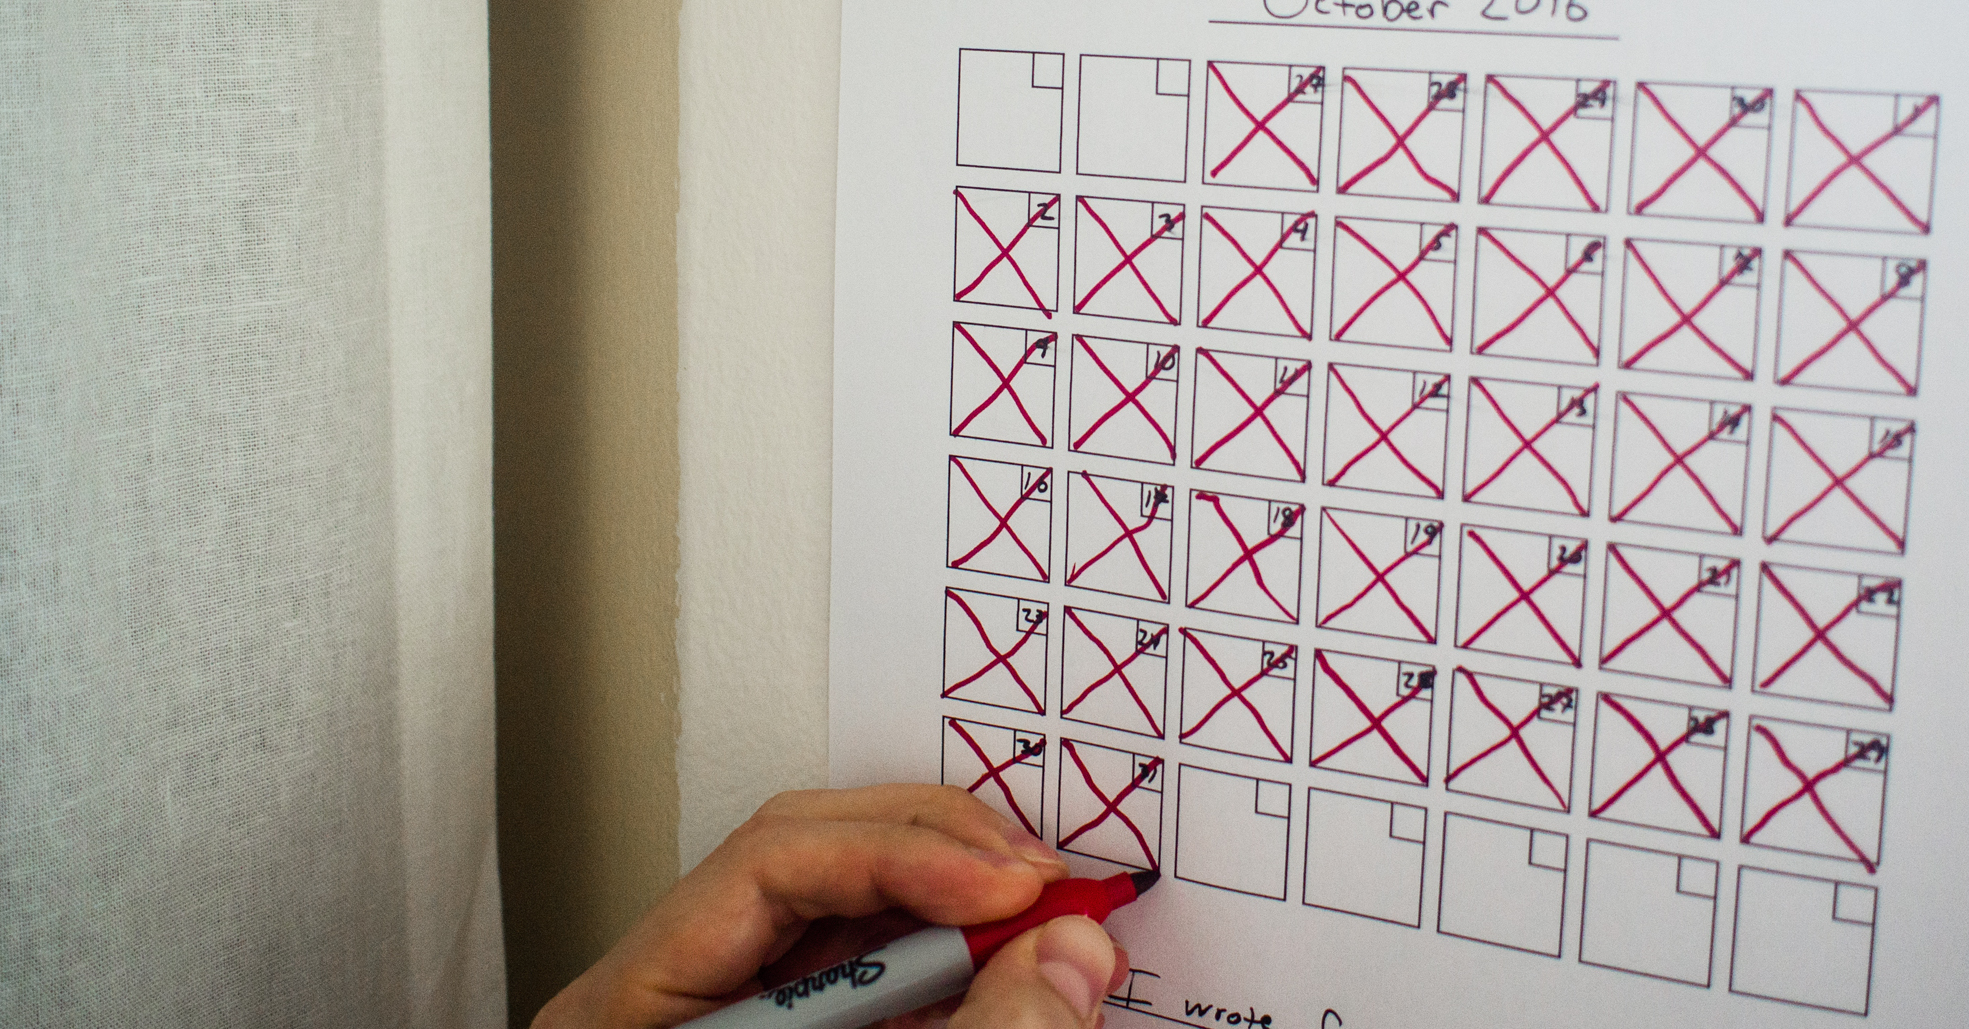 So I Wrote Every Day For A Month… - Derek Ralston